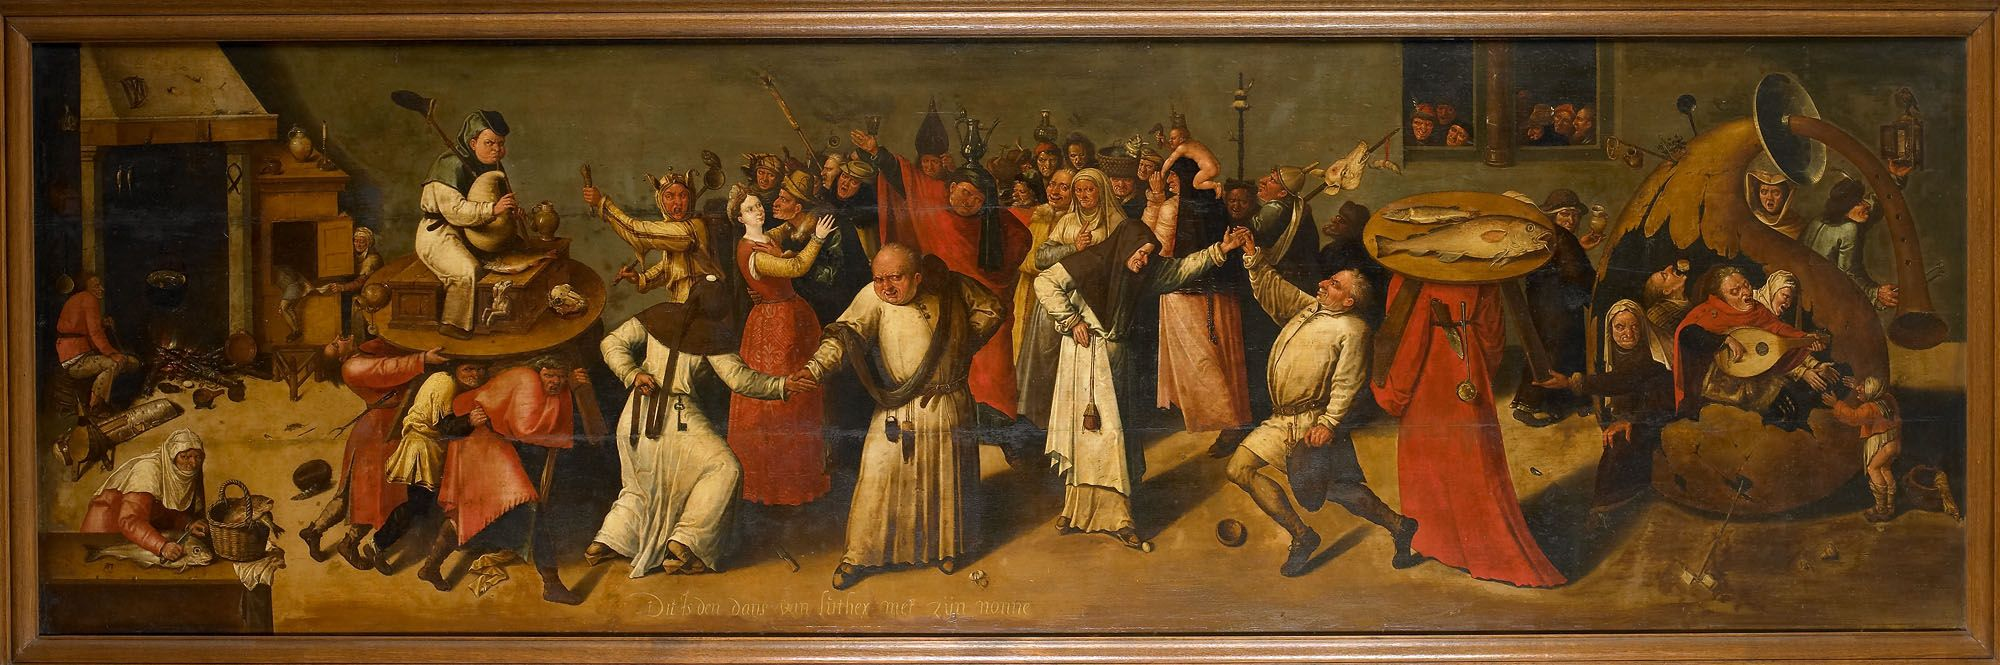 Battle between Carnival and Lent. Bosch, Hieronymus